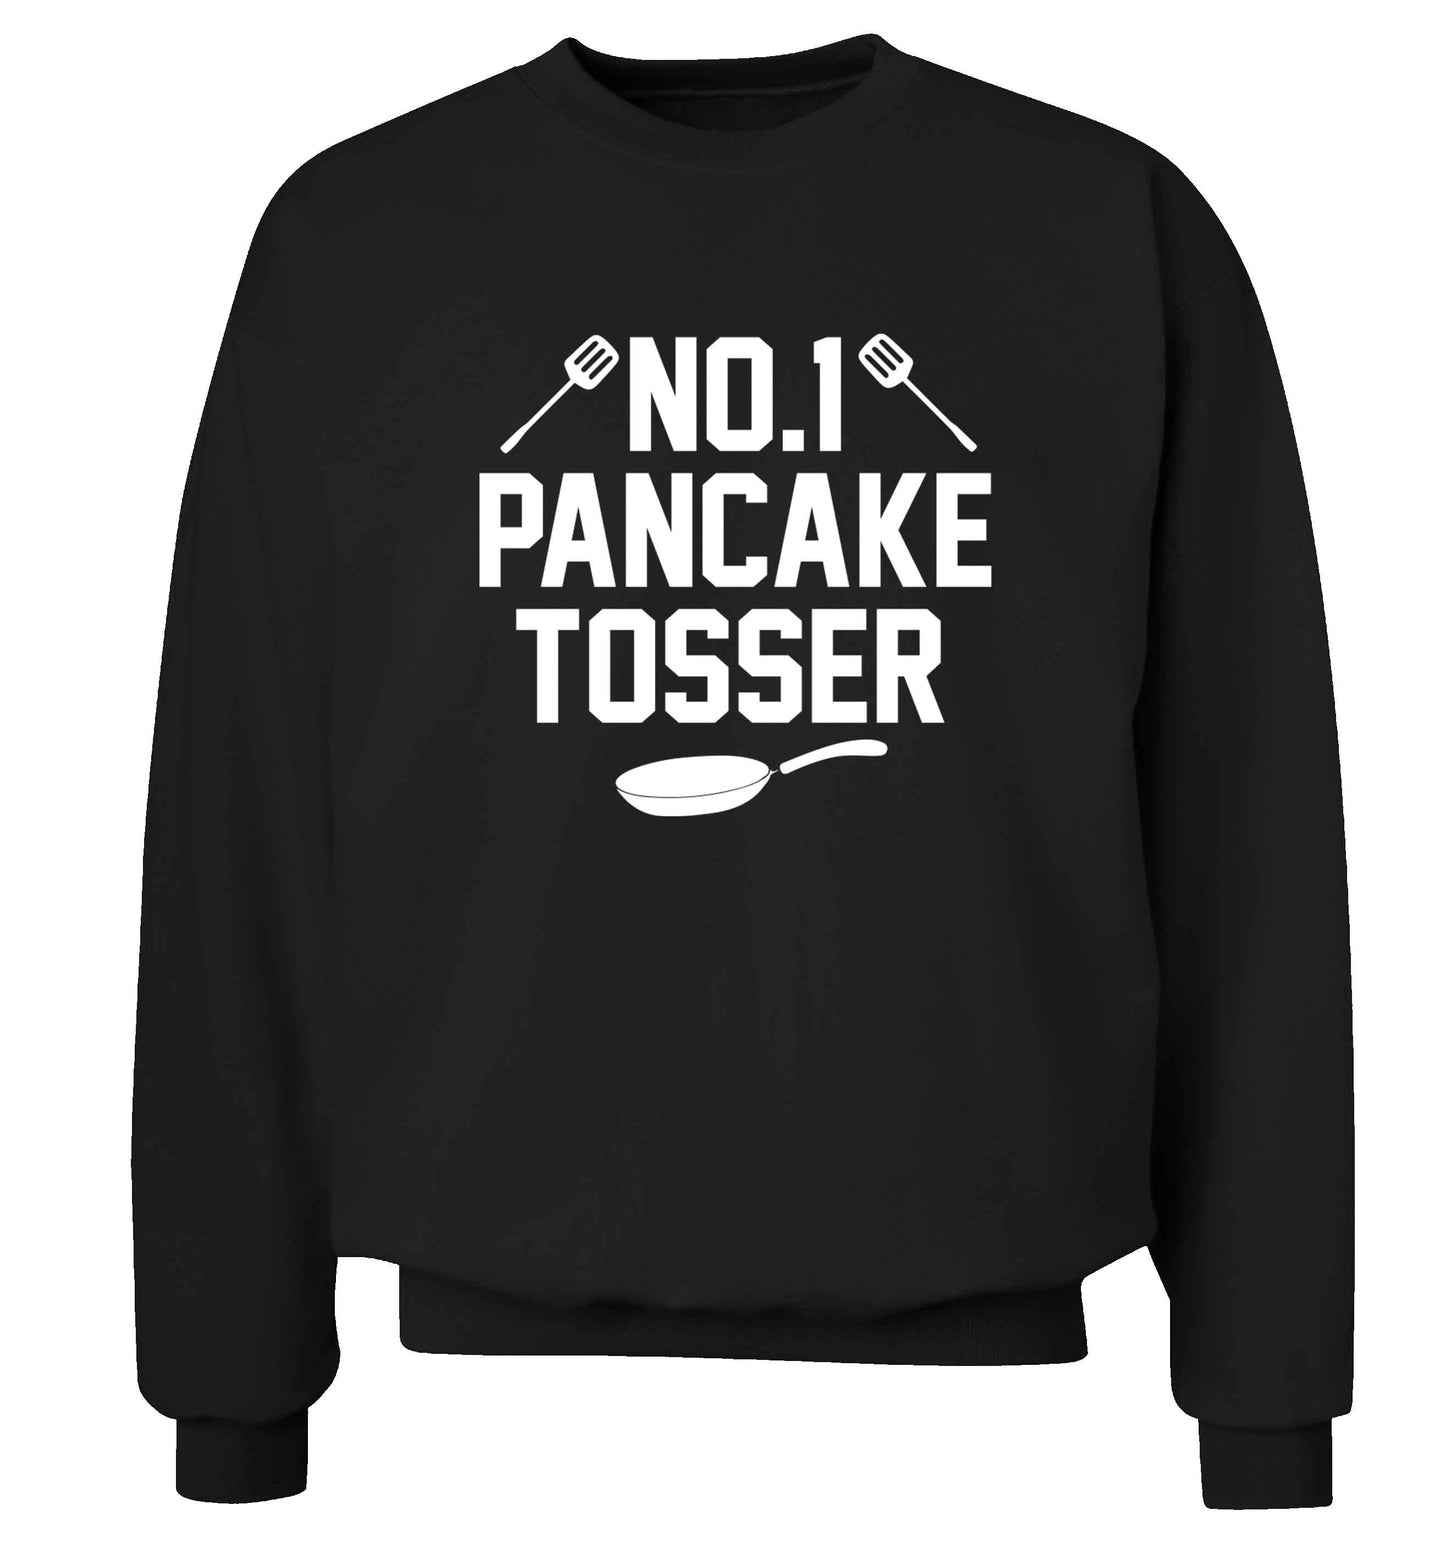 No.1 Pancake tosser adult's unisex black sweater 2XL